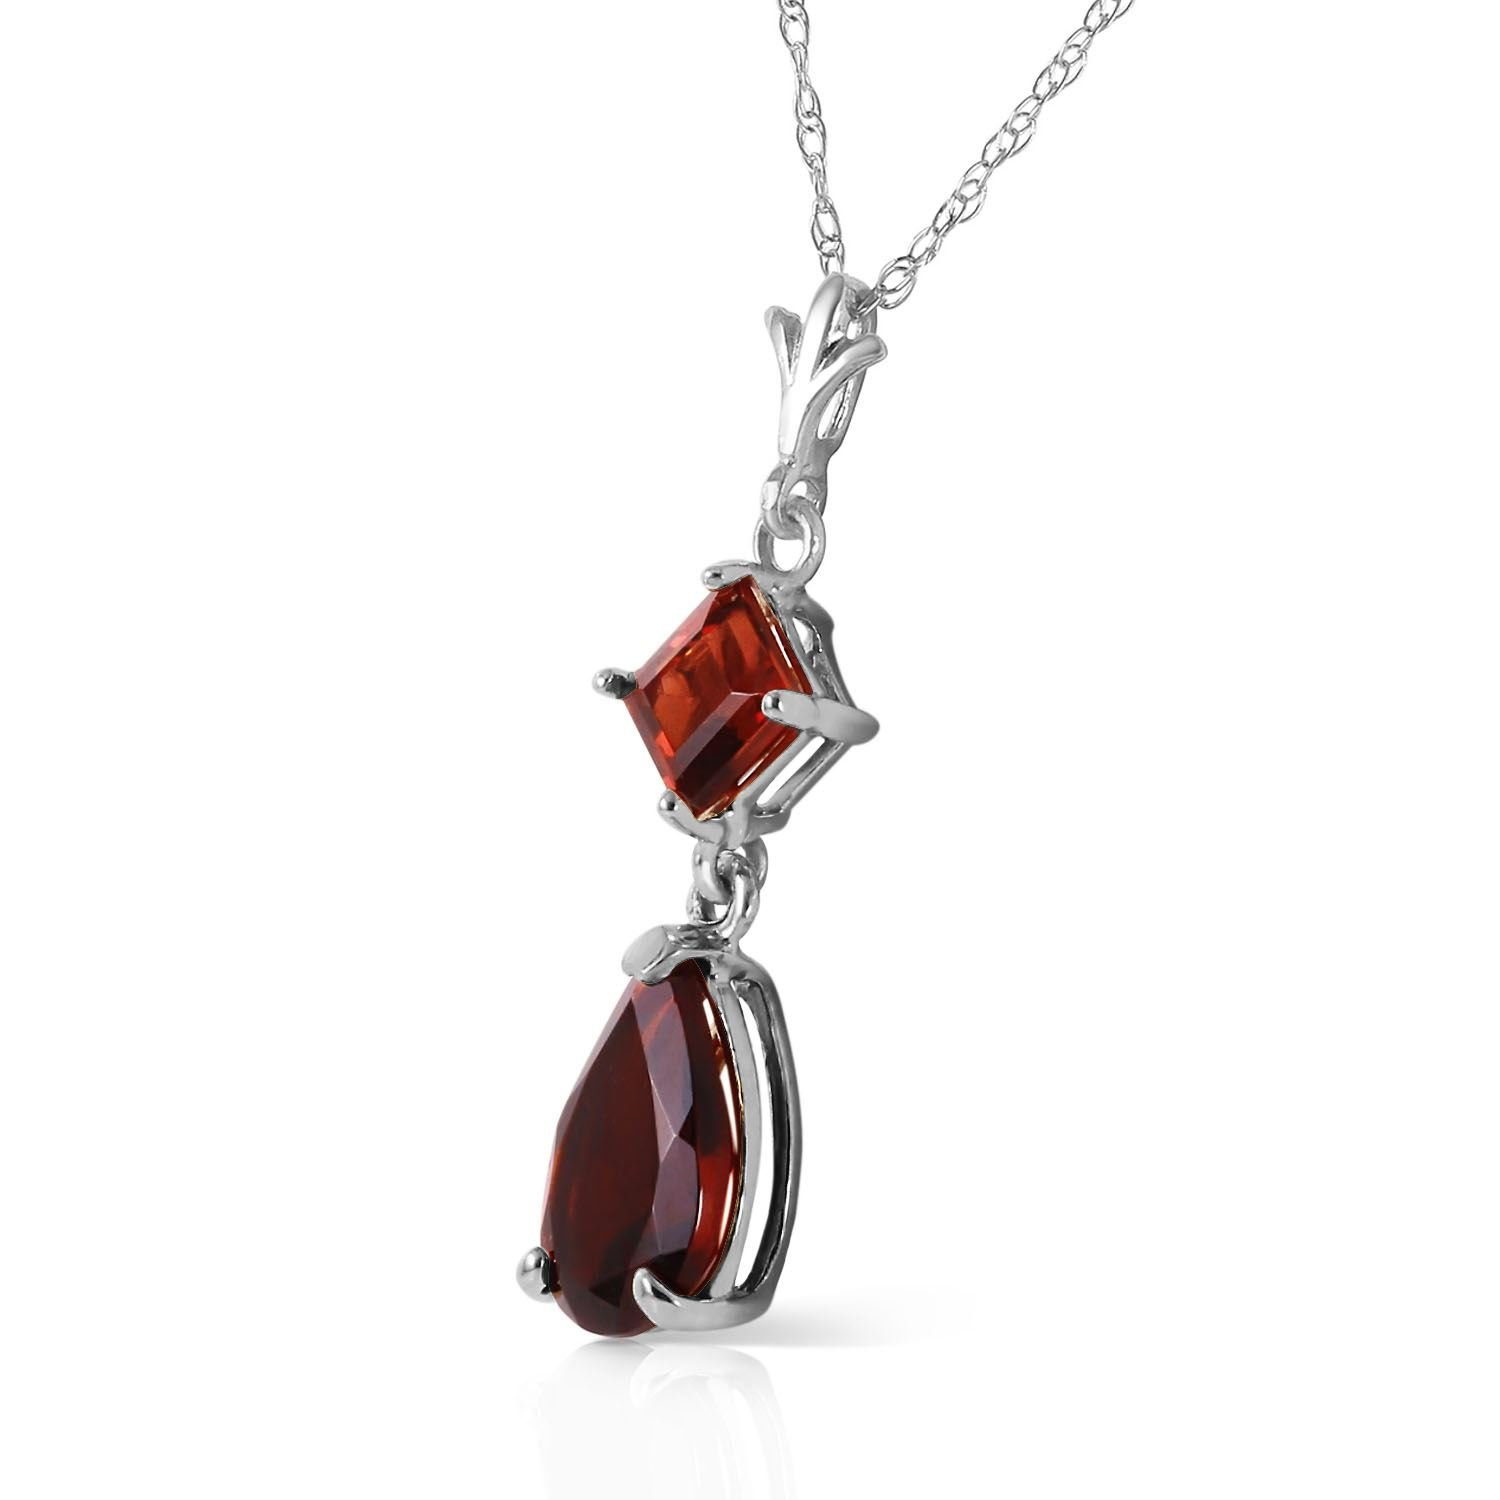 ALARRI 2 CTW 14K Solid White Gold Granted Wishes Garnet Necklace with 22 Inch Chain Length